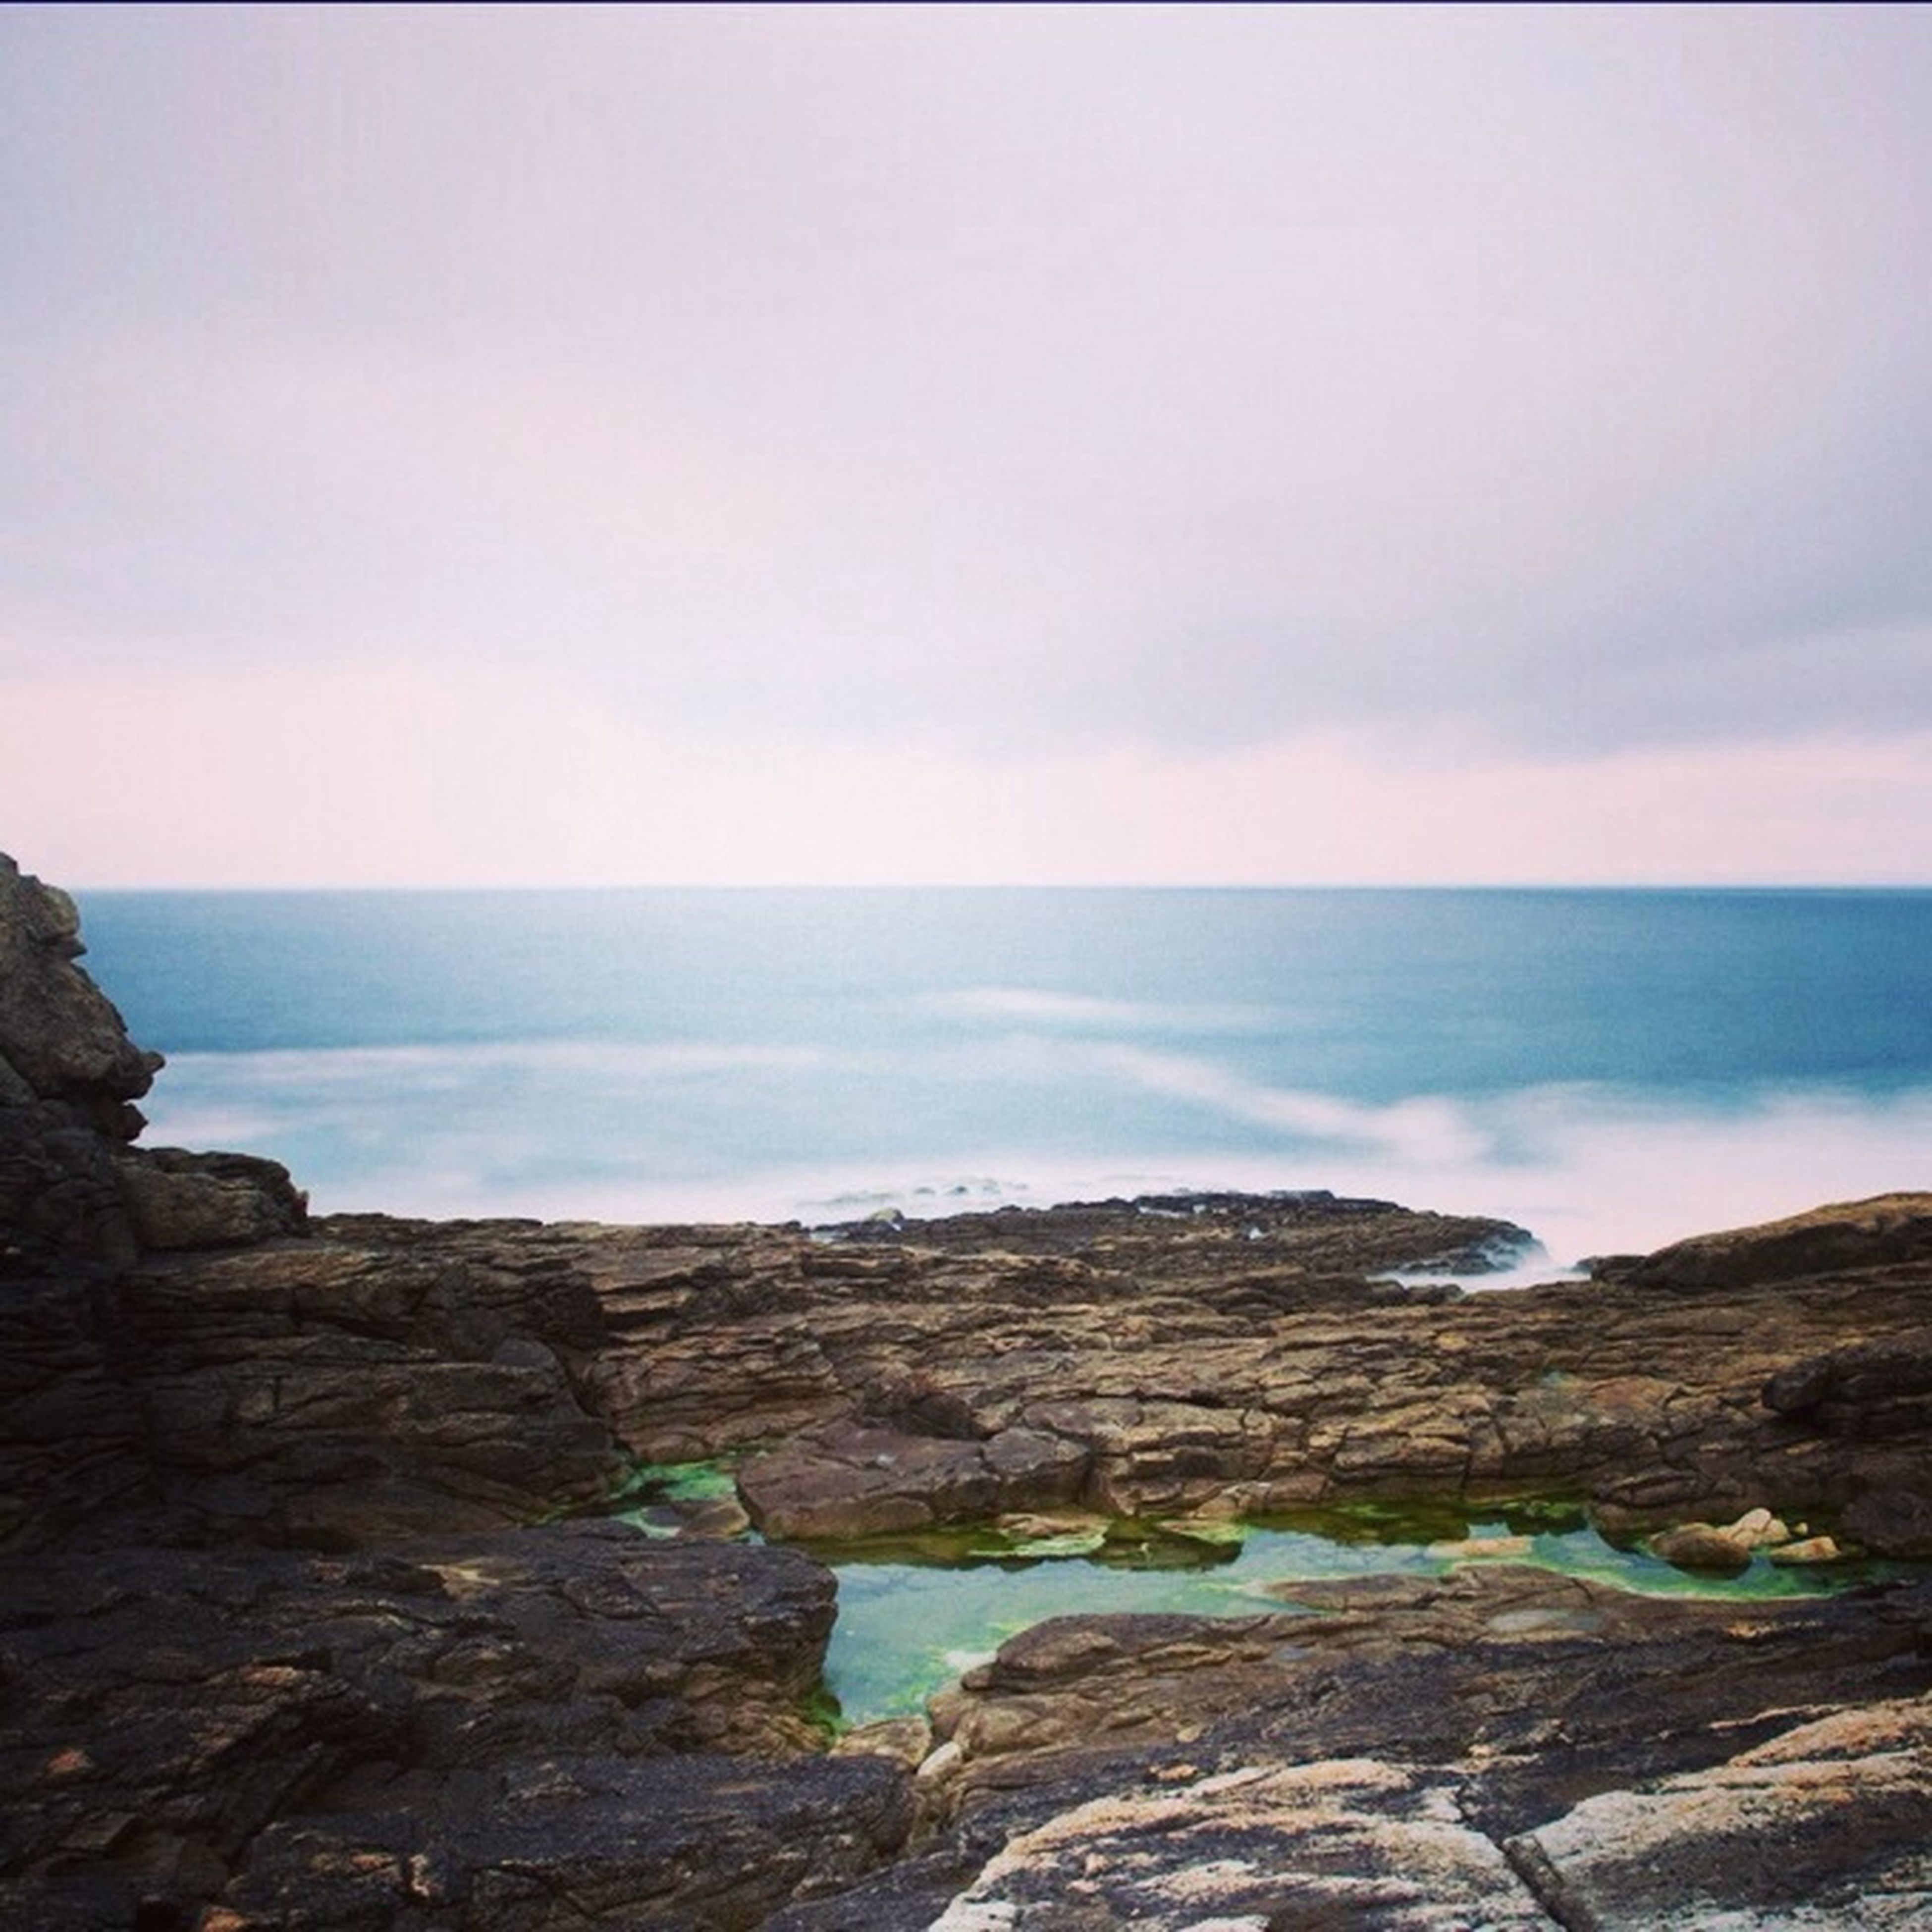 sea, horizon over water, scenics, rock - object, water, tranquil scene, beauty in nature, sky, tranquility, rock formation, nature, rock, cliff, idyllic, shore, cloud - sky, beach, remote, non-urban scene, outdoors